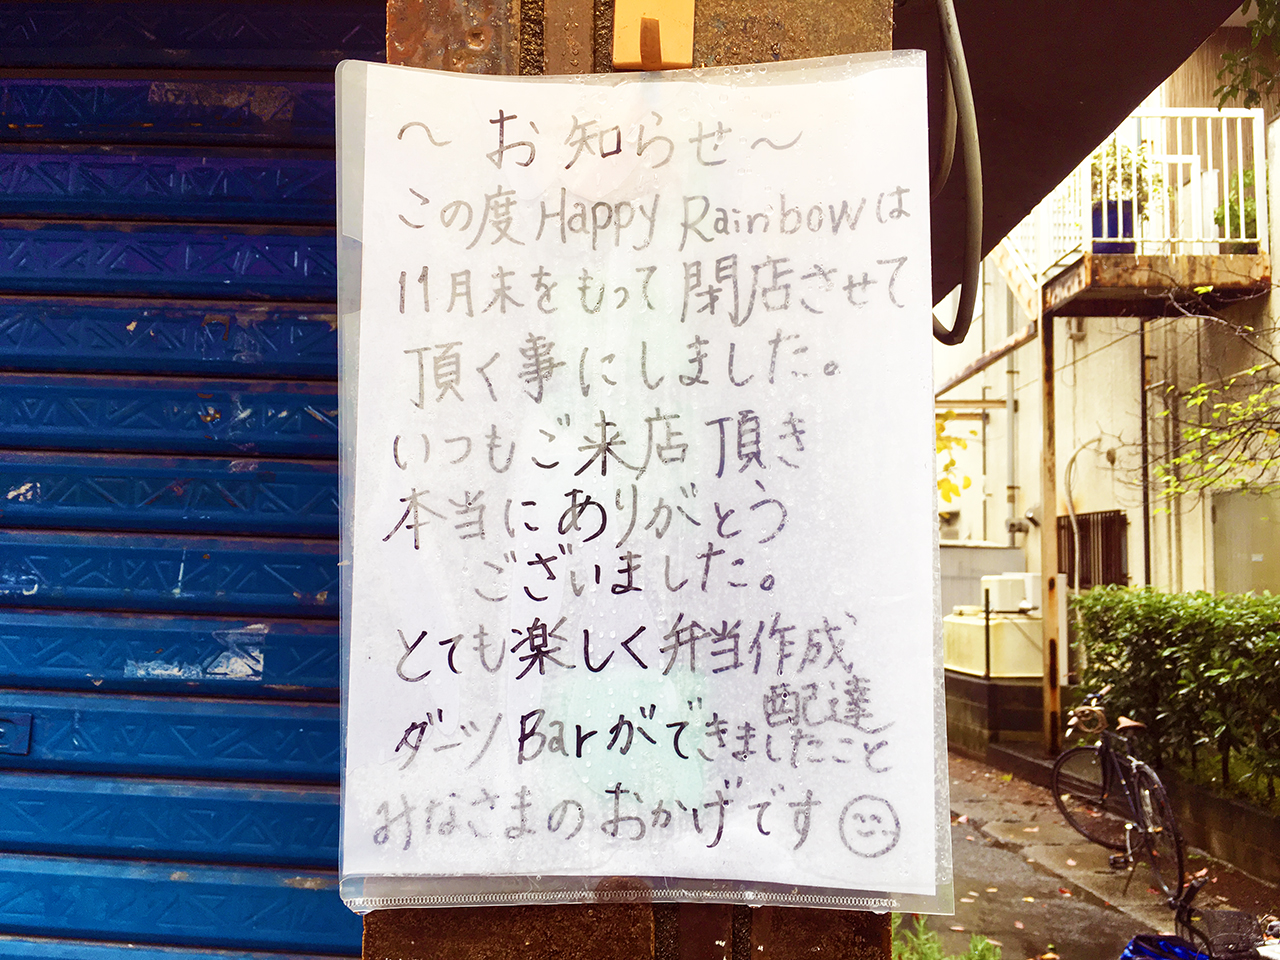 happyrainbow閉店